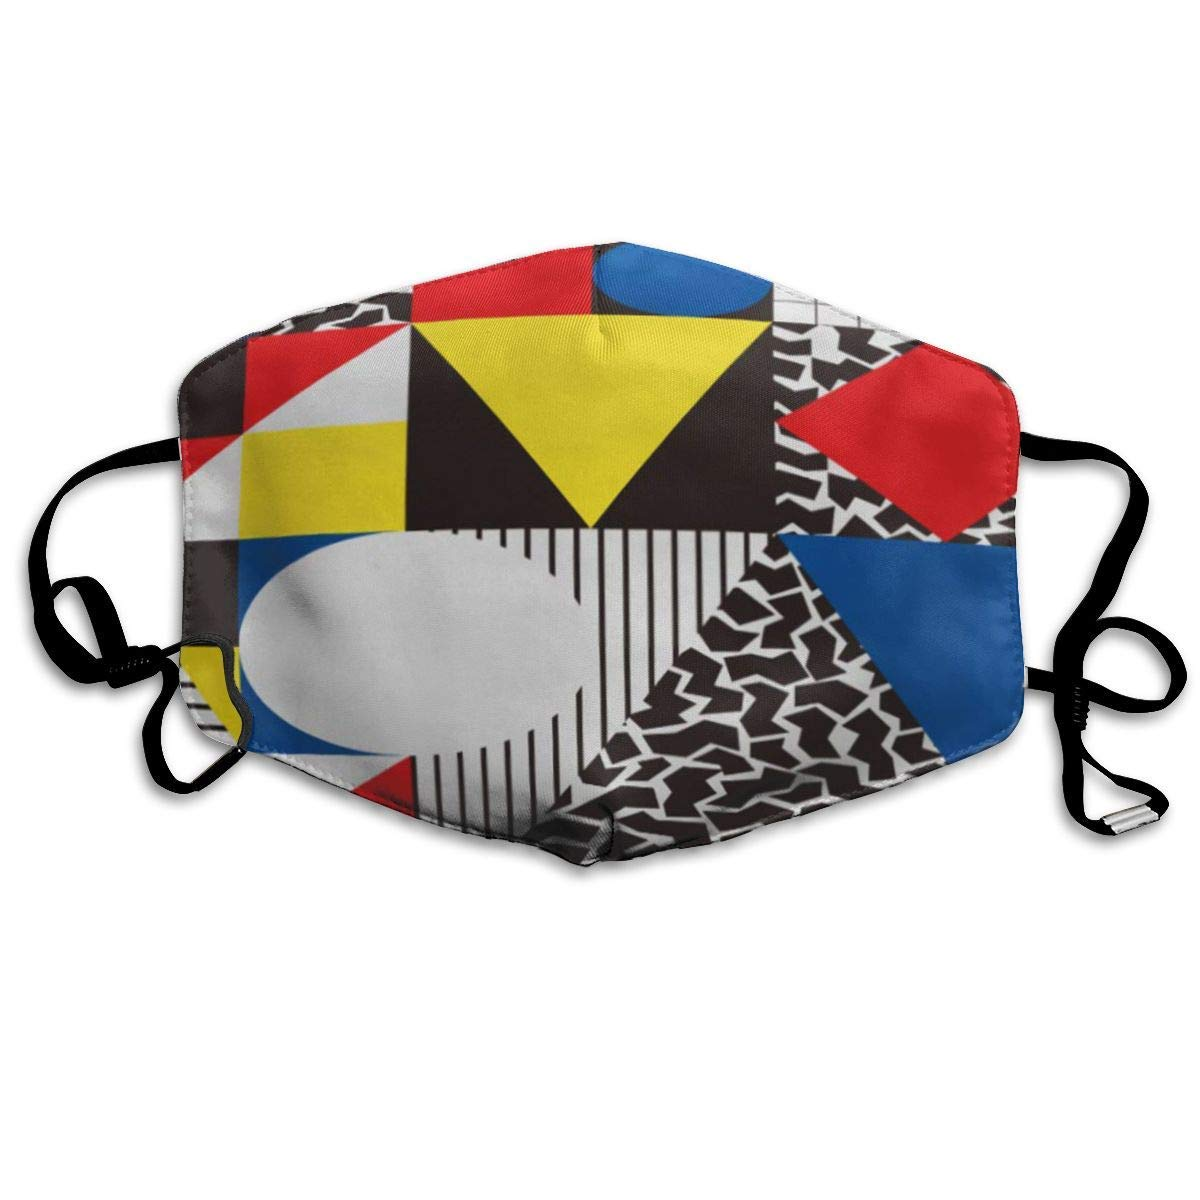 Dust-proof Thermal Masks, Suitable For Running And Cycling Outdoor Activities, Multi-purpose Masks Colorful Bauhaus Abstract Geometric In Retro Modern Pattern Cubism 80s